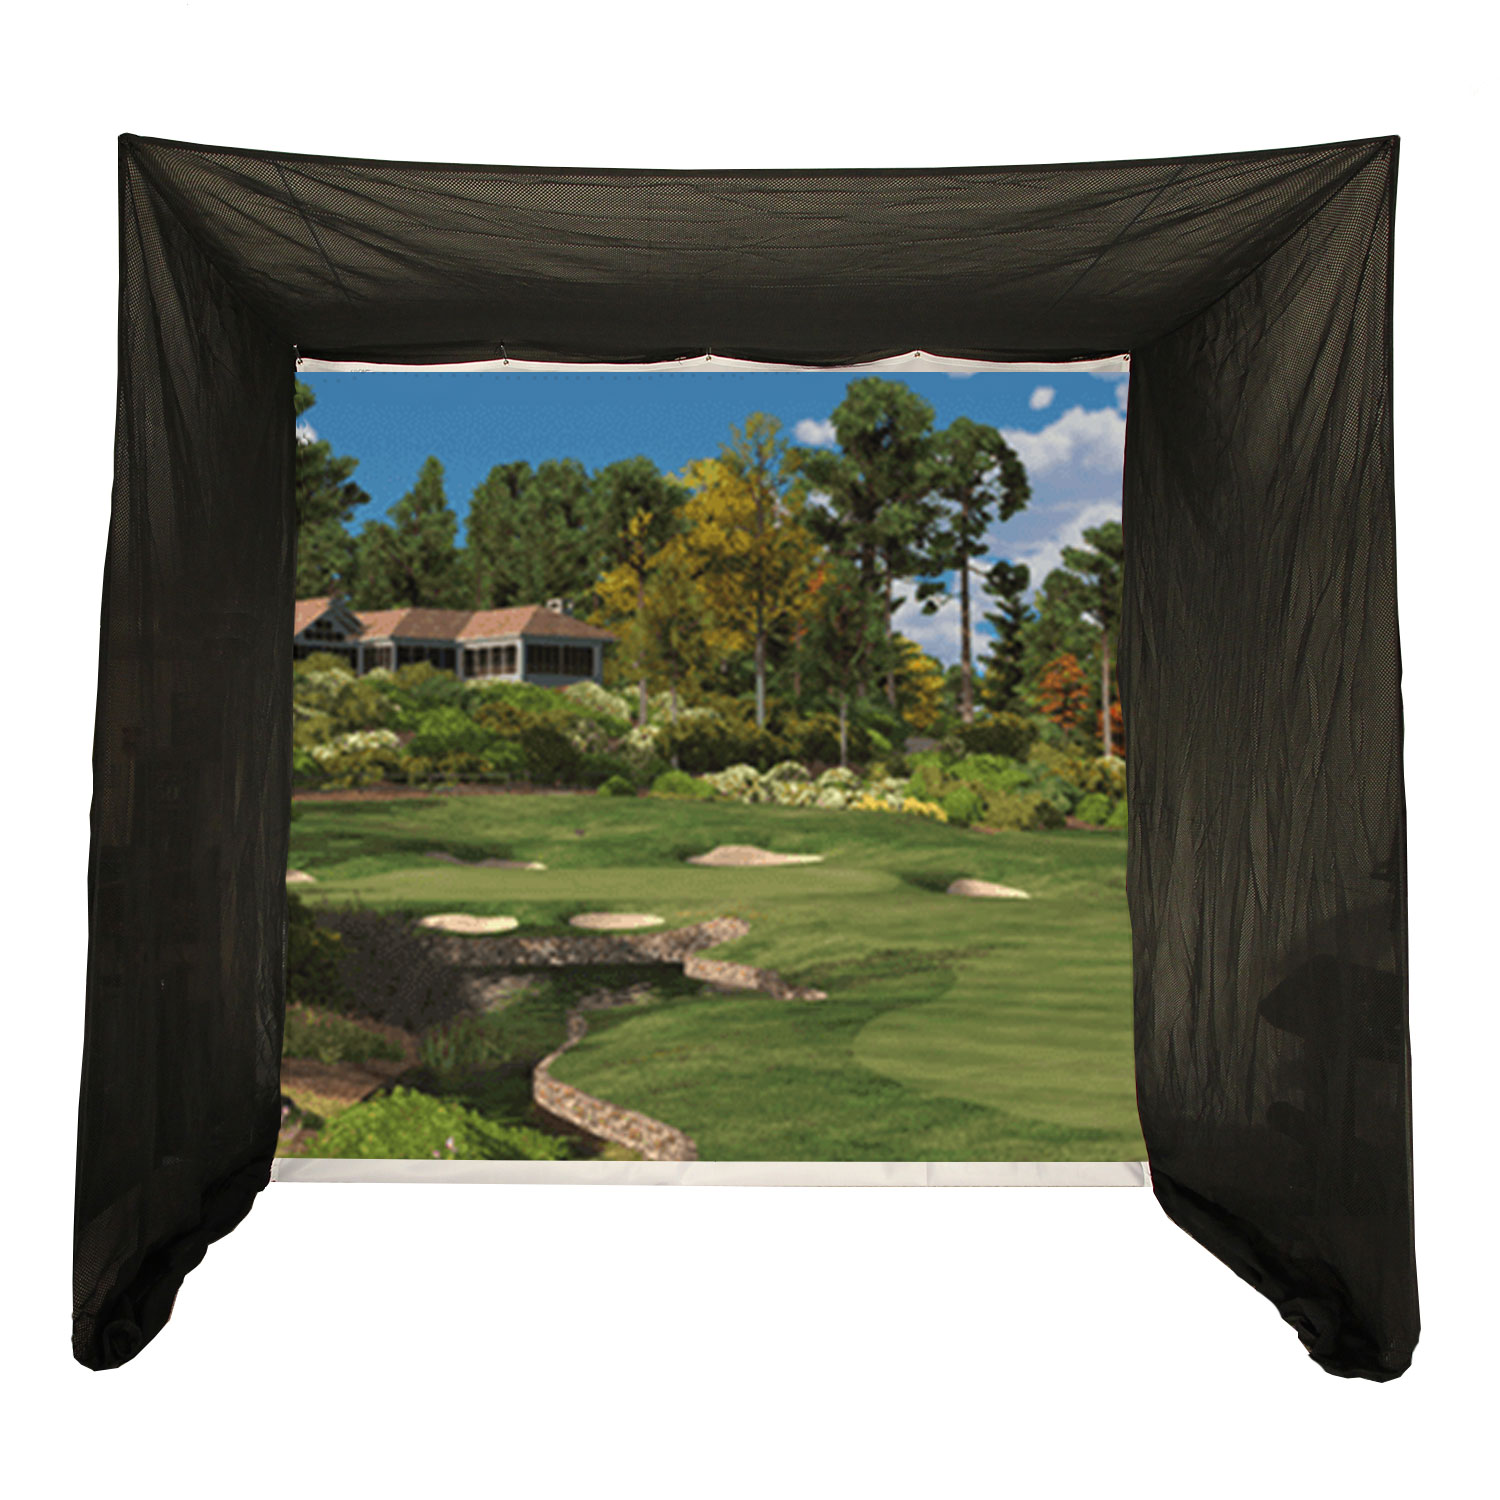 Packaging or Promotional image for Cimarron 5x10x10 Tour Simulator Archery Golf Net